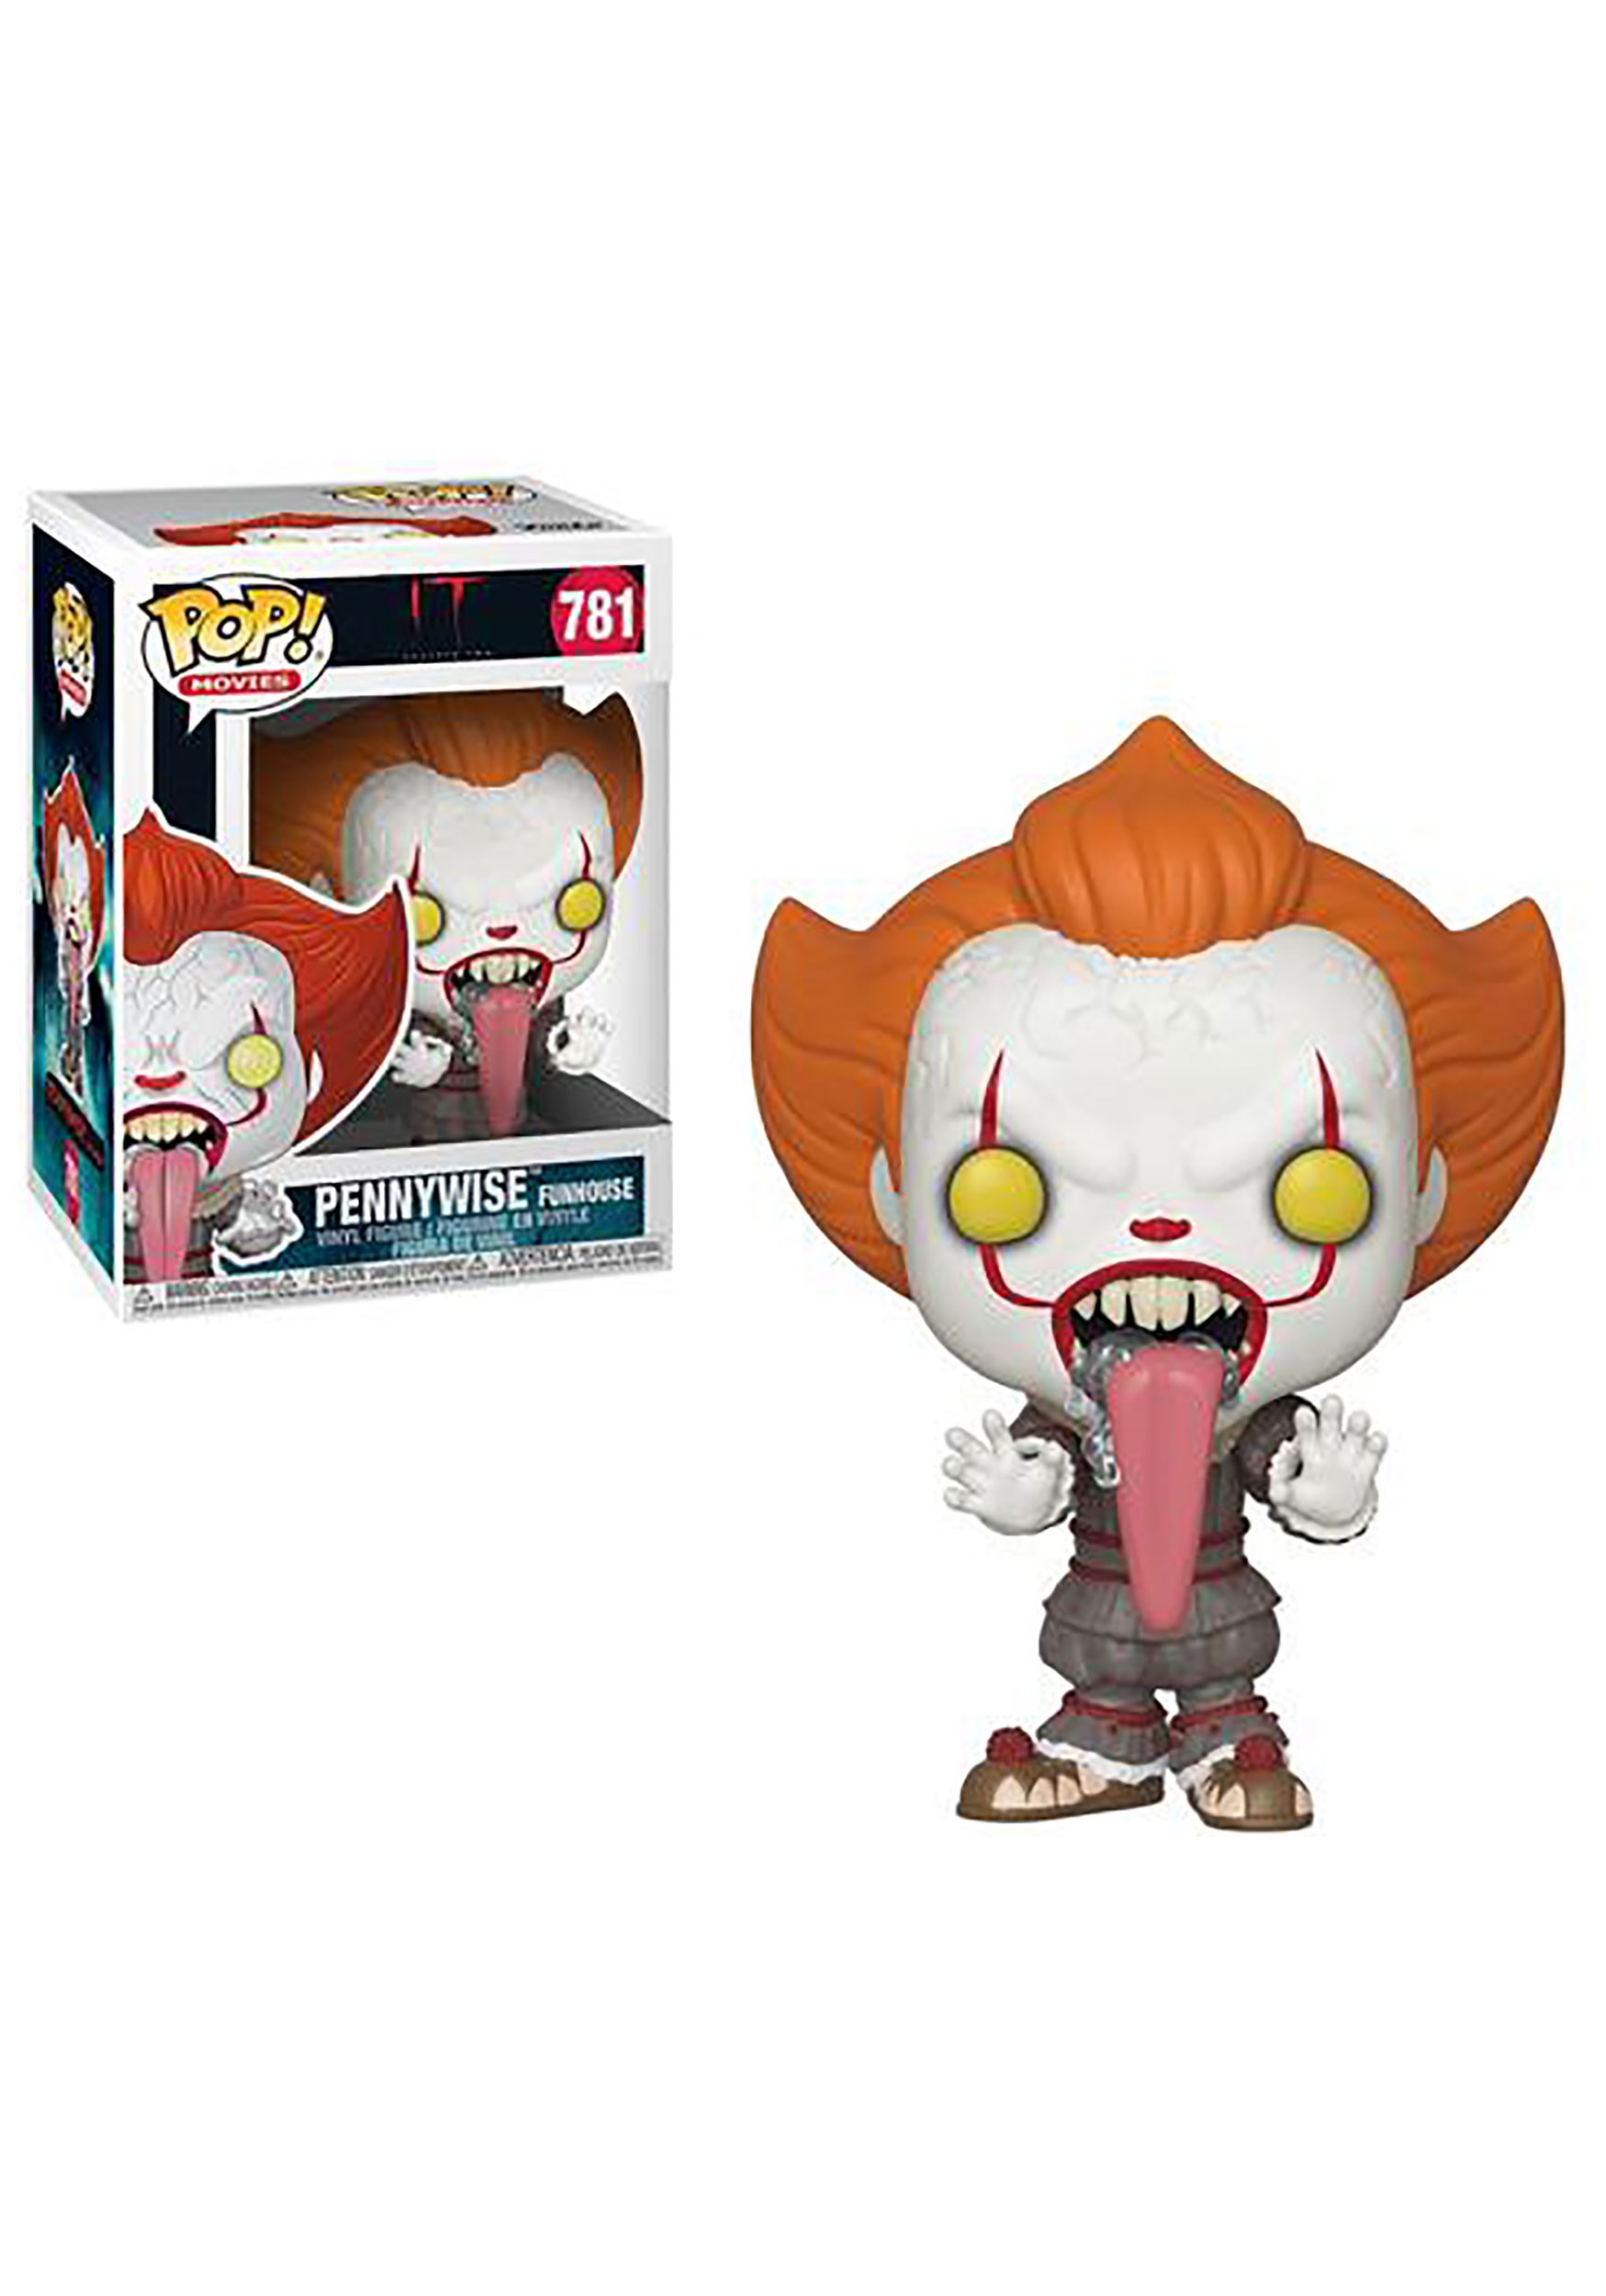 Pop! Movies: Pennywise with Dog Tongue- It: Chapter 2